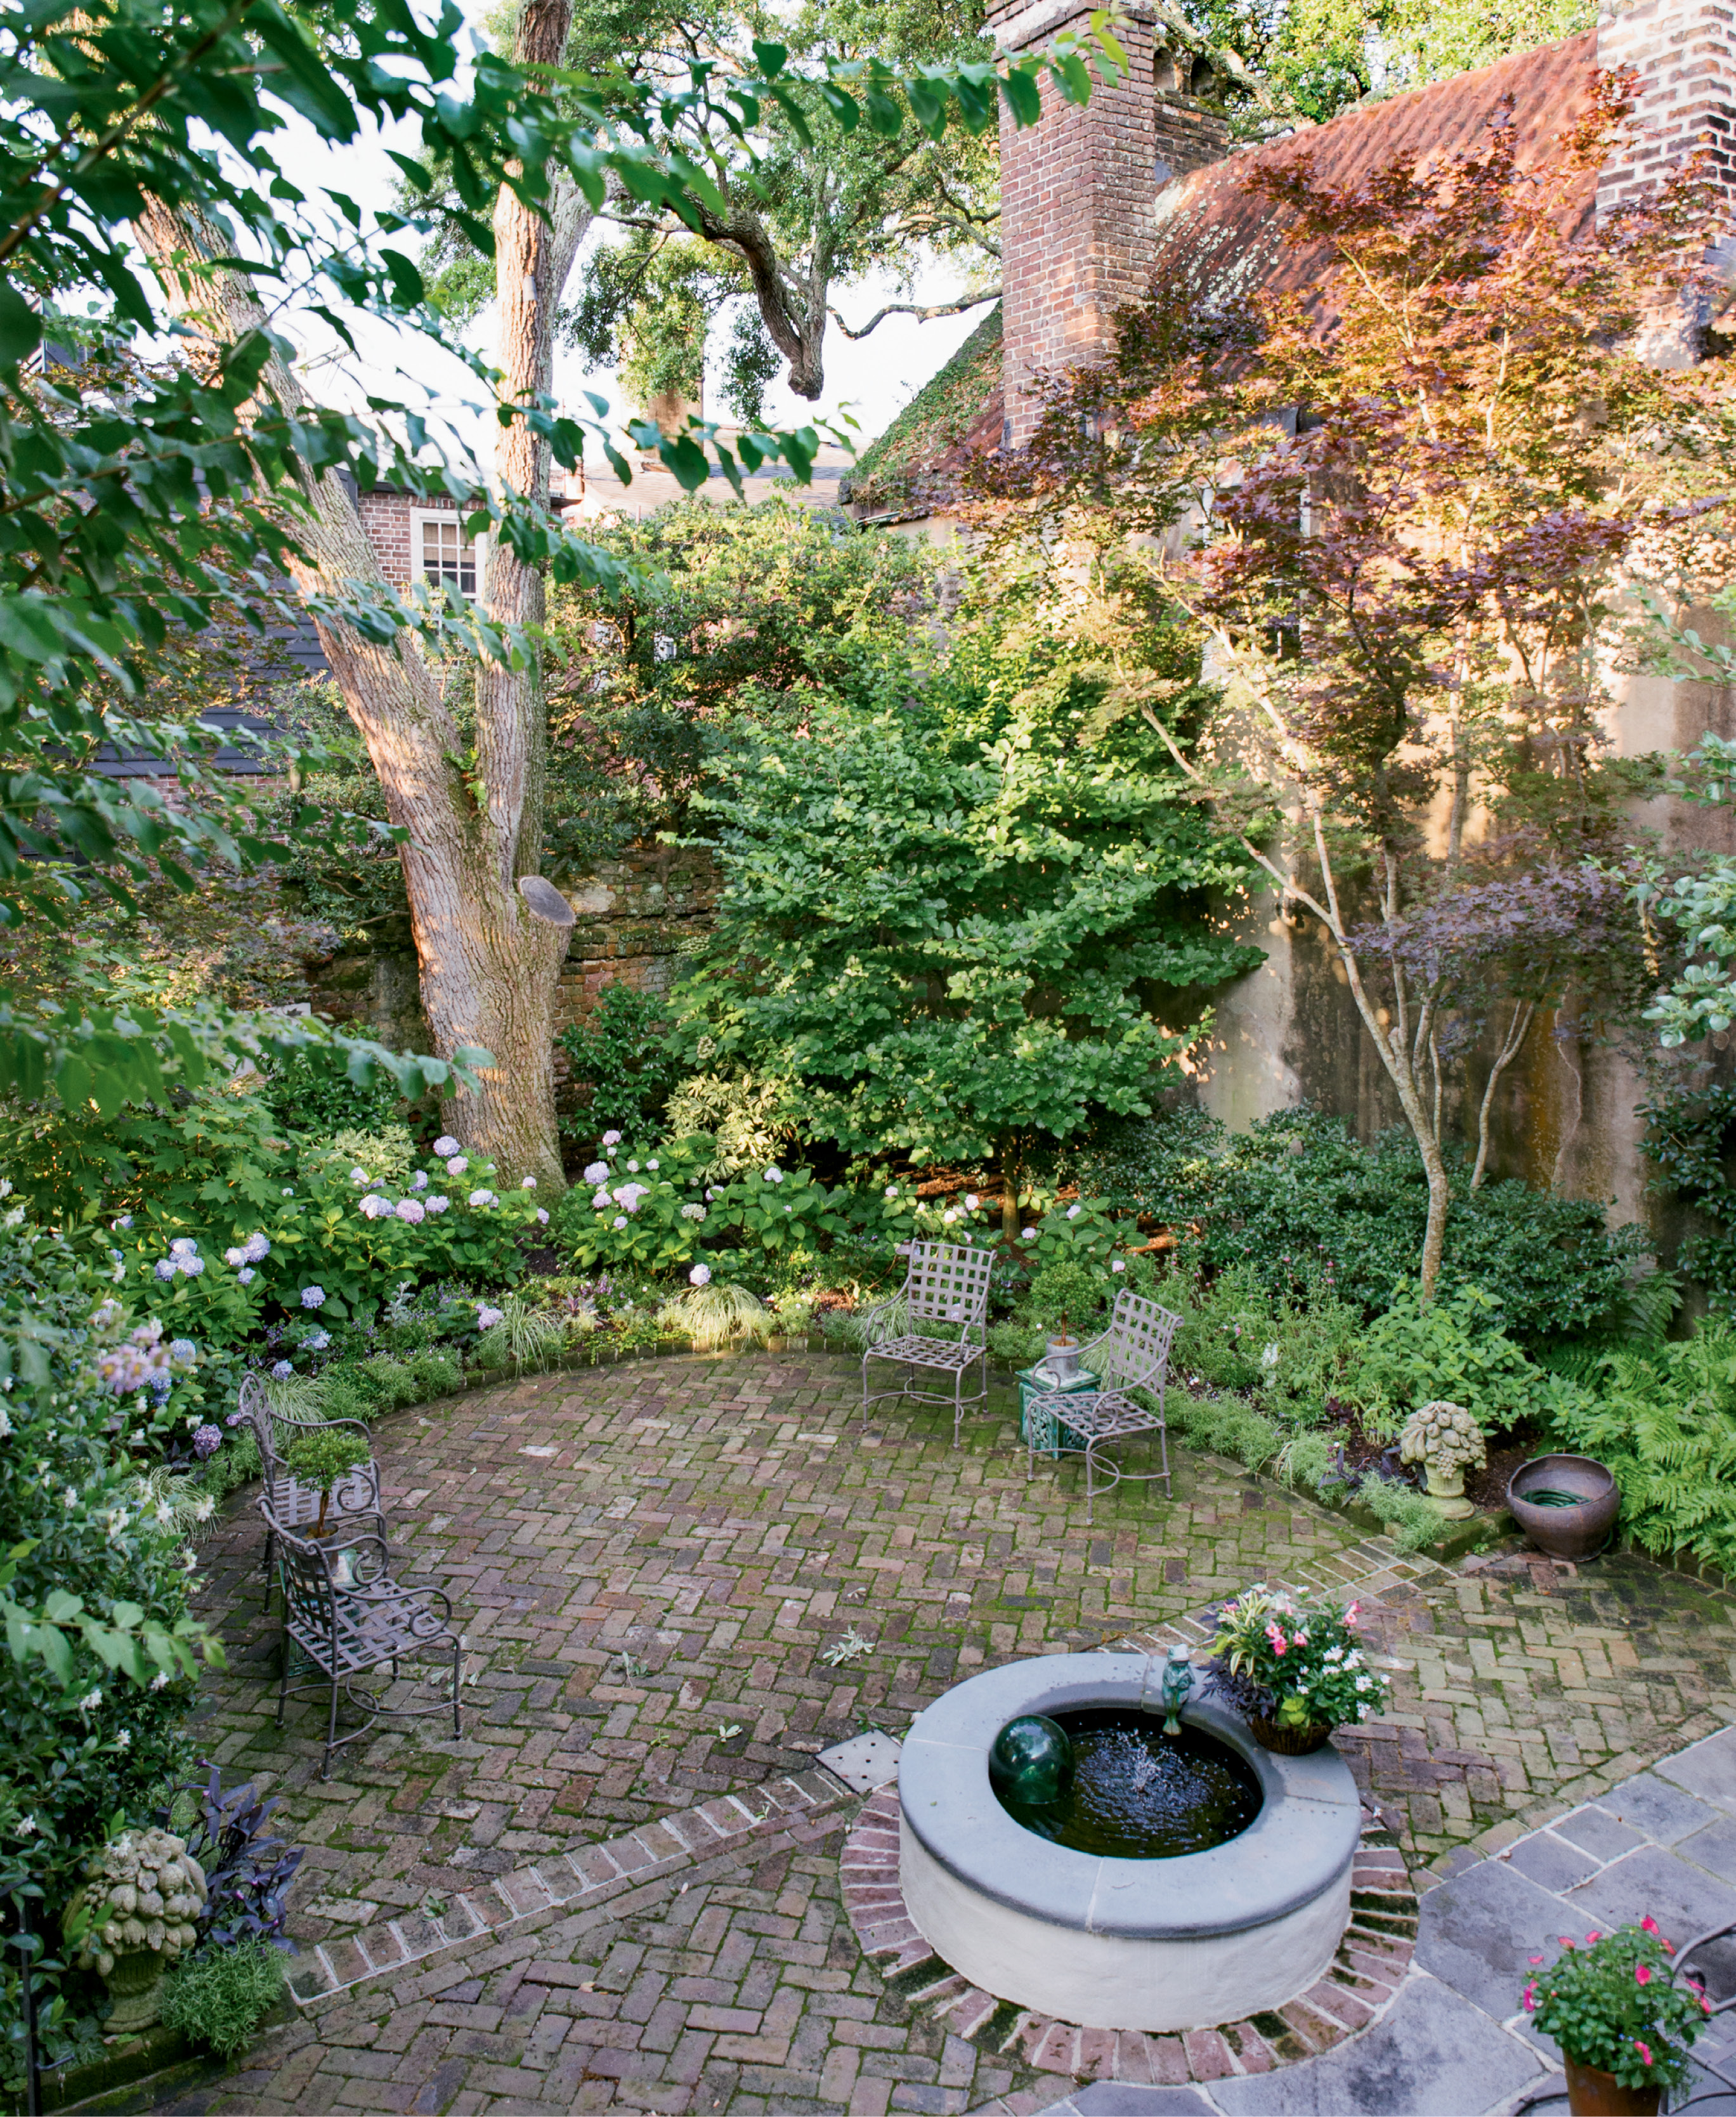 Mature oak, parrotia, Japanese maple, and fringe trees lend privacy and shade to the courtyard garden.